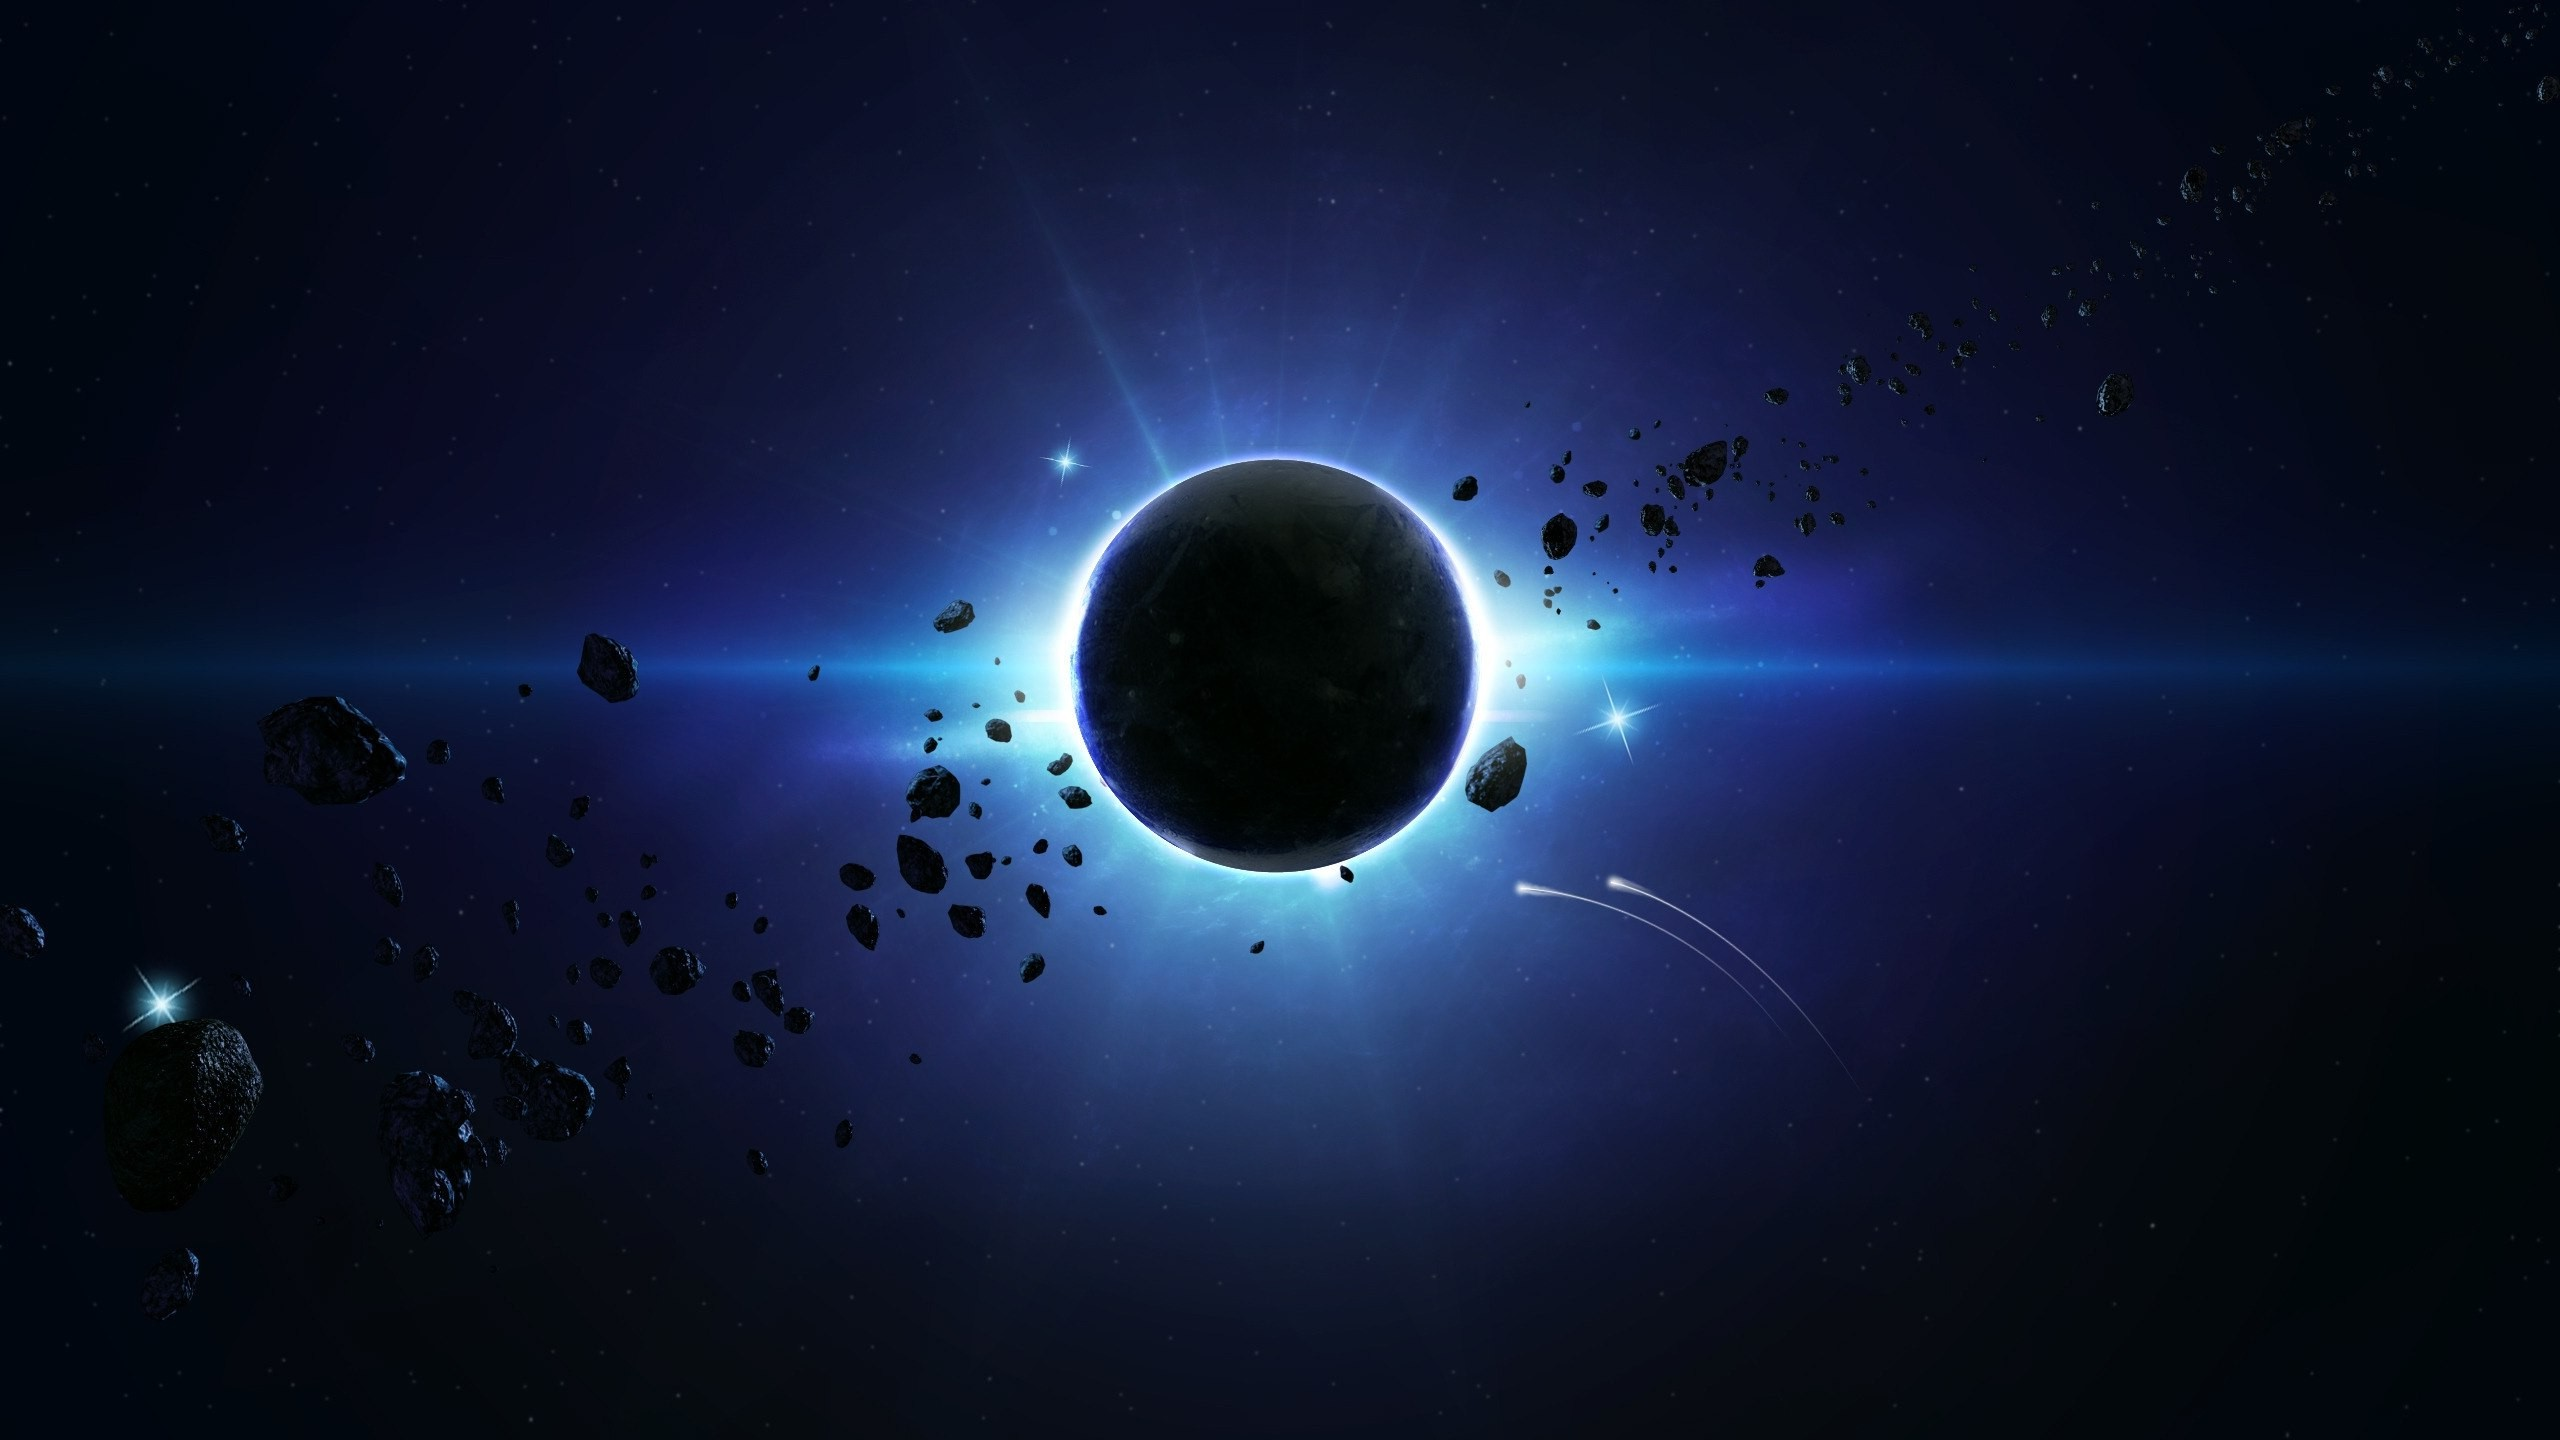 solar Eclipse, Planet, Space, Asteroid, Space Art ...